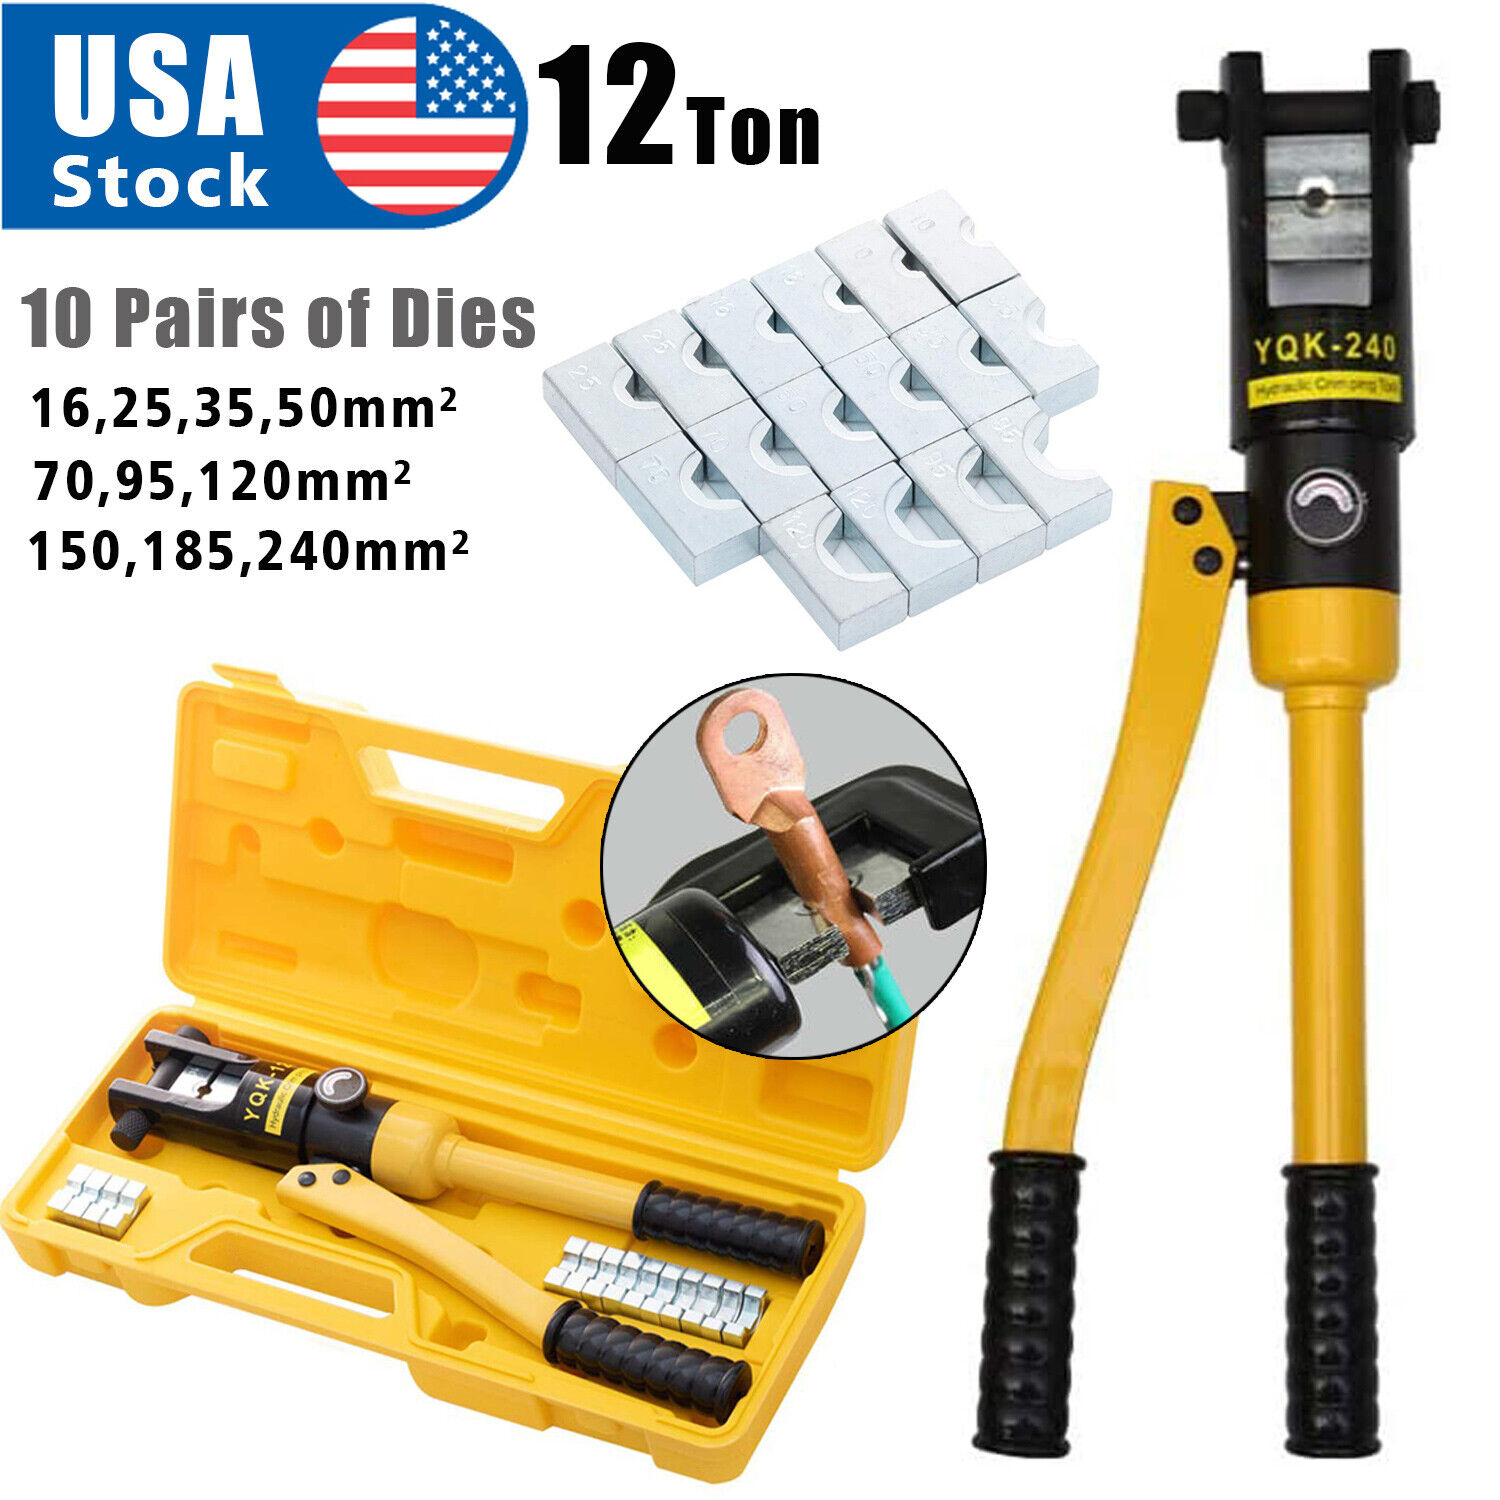 12 Ton Hydraulic Wire Crimper Crimping Tool Battery Cable Lug Terminal 10 Dies Business & Industrial